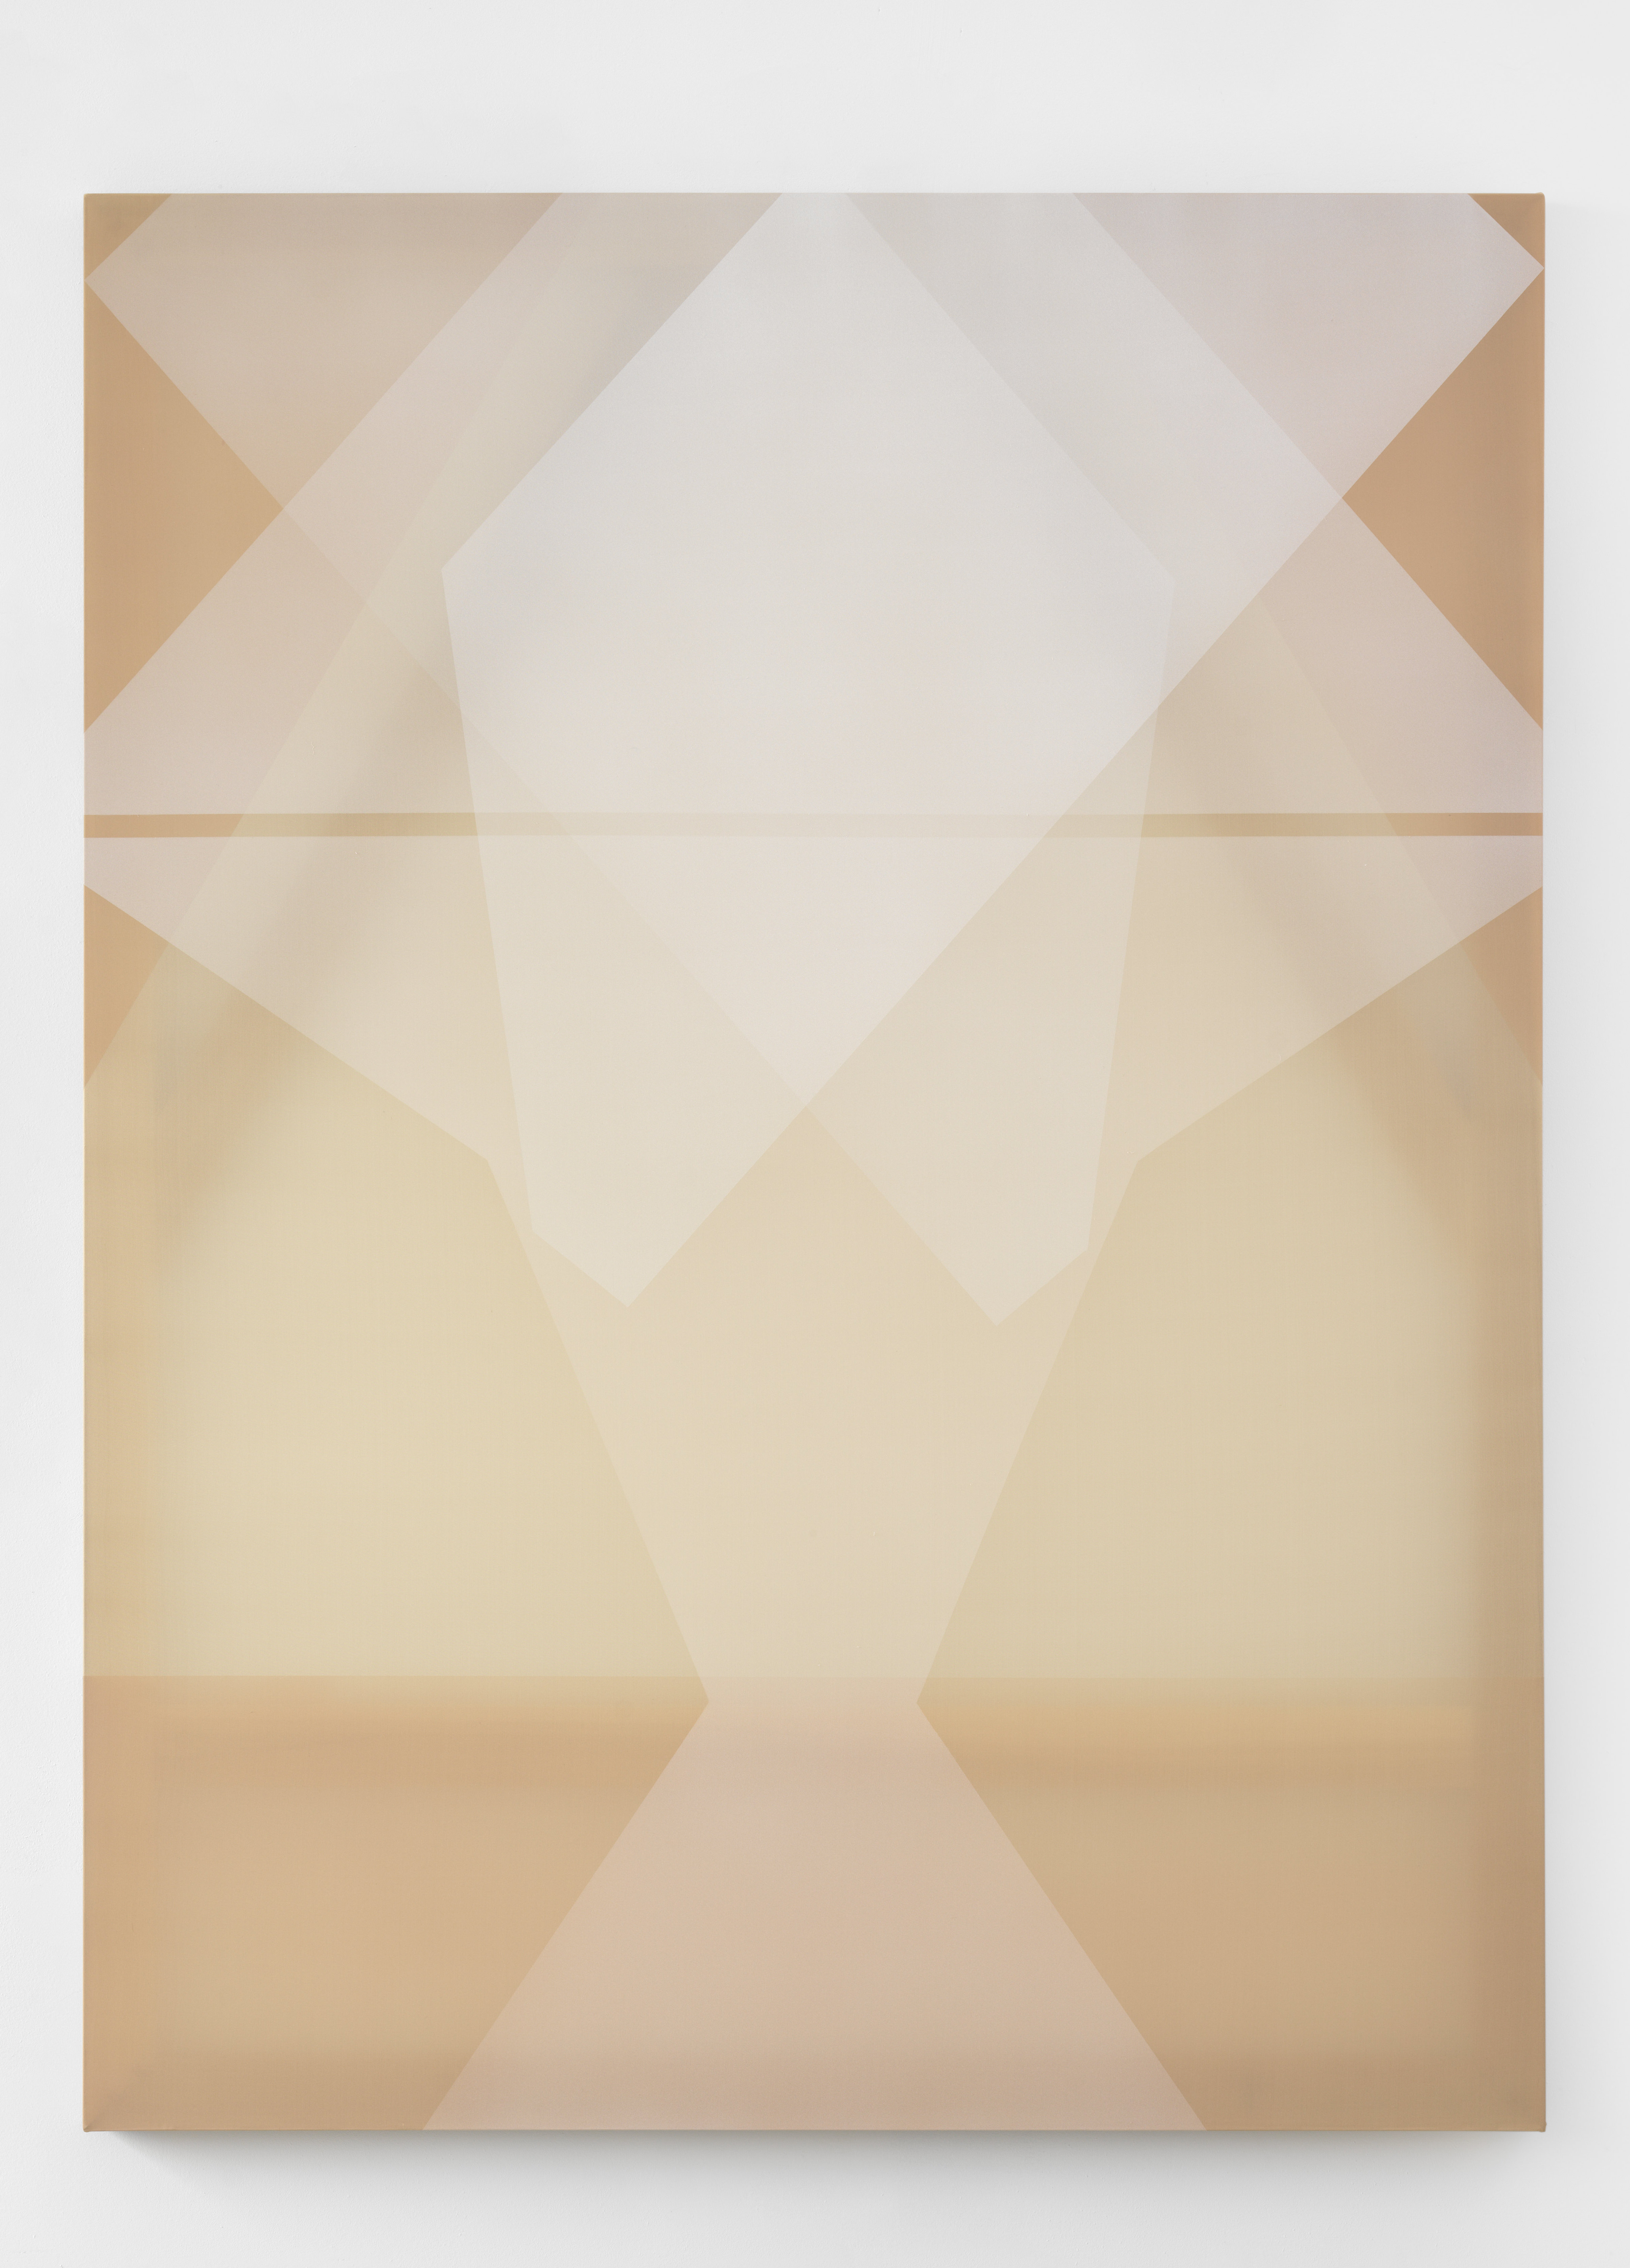 Rebecca Ward, white morph, 2018, acrylic on silk, 60 x 45 in